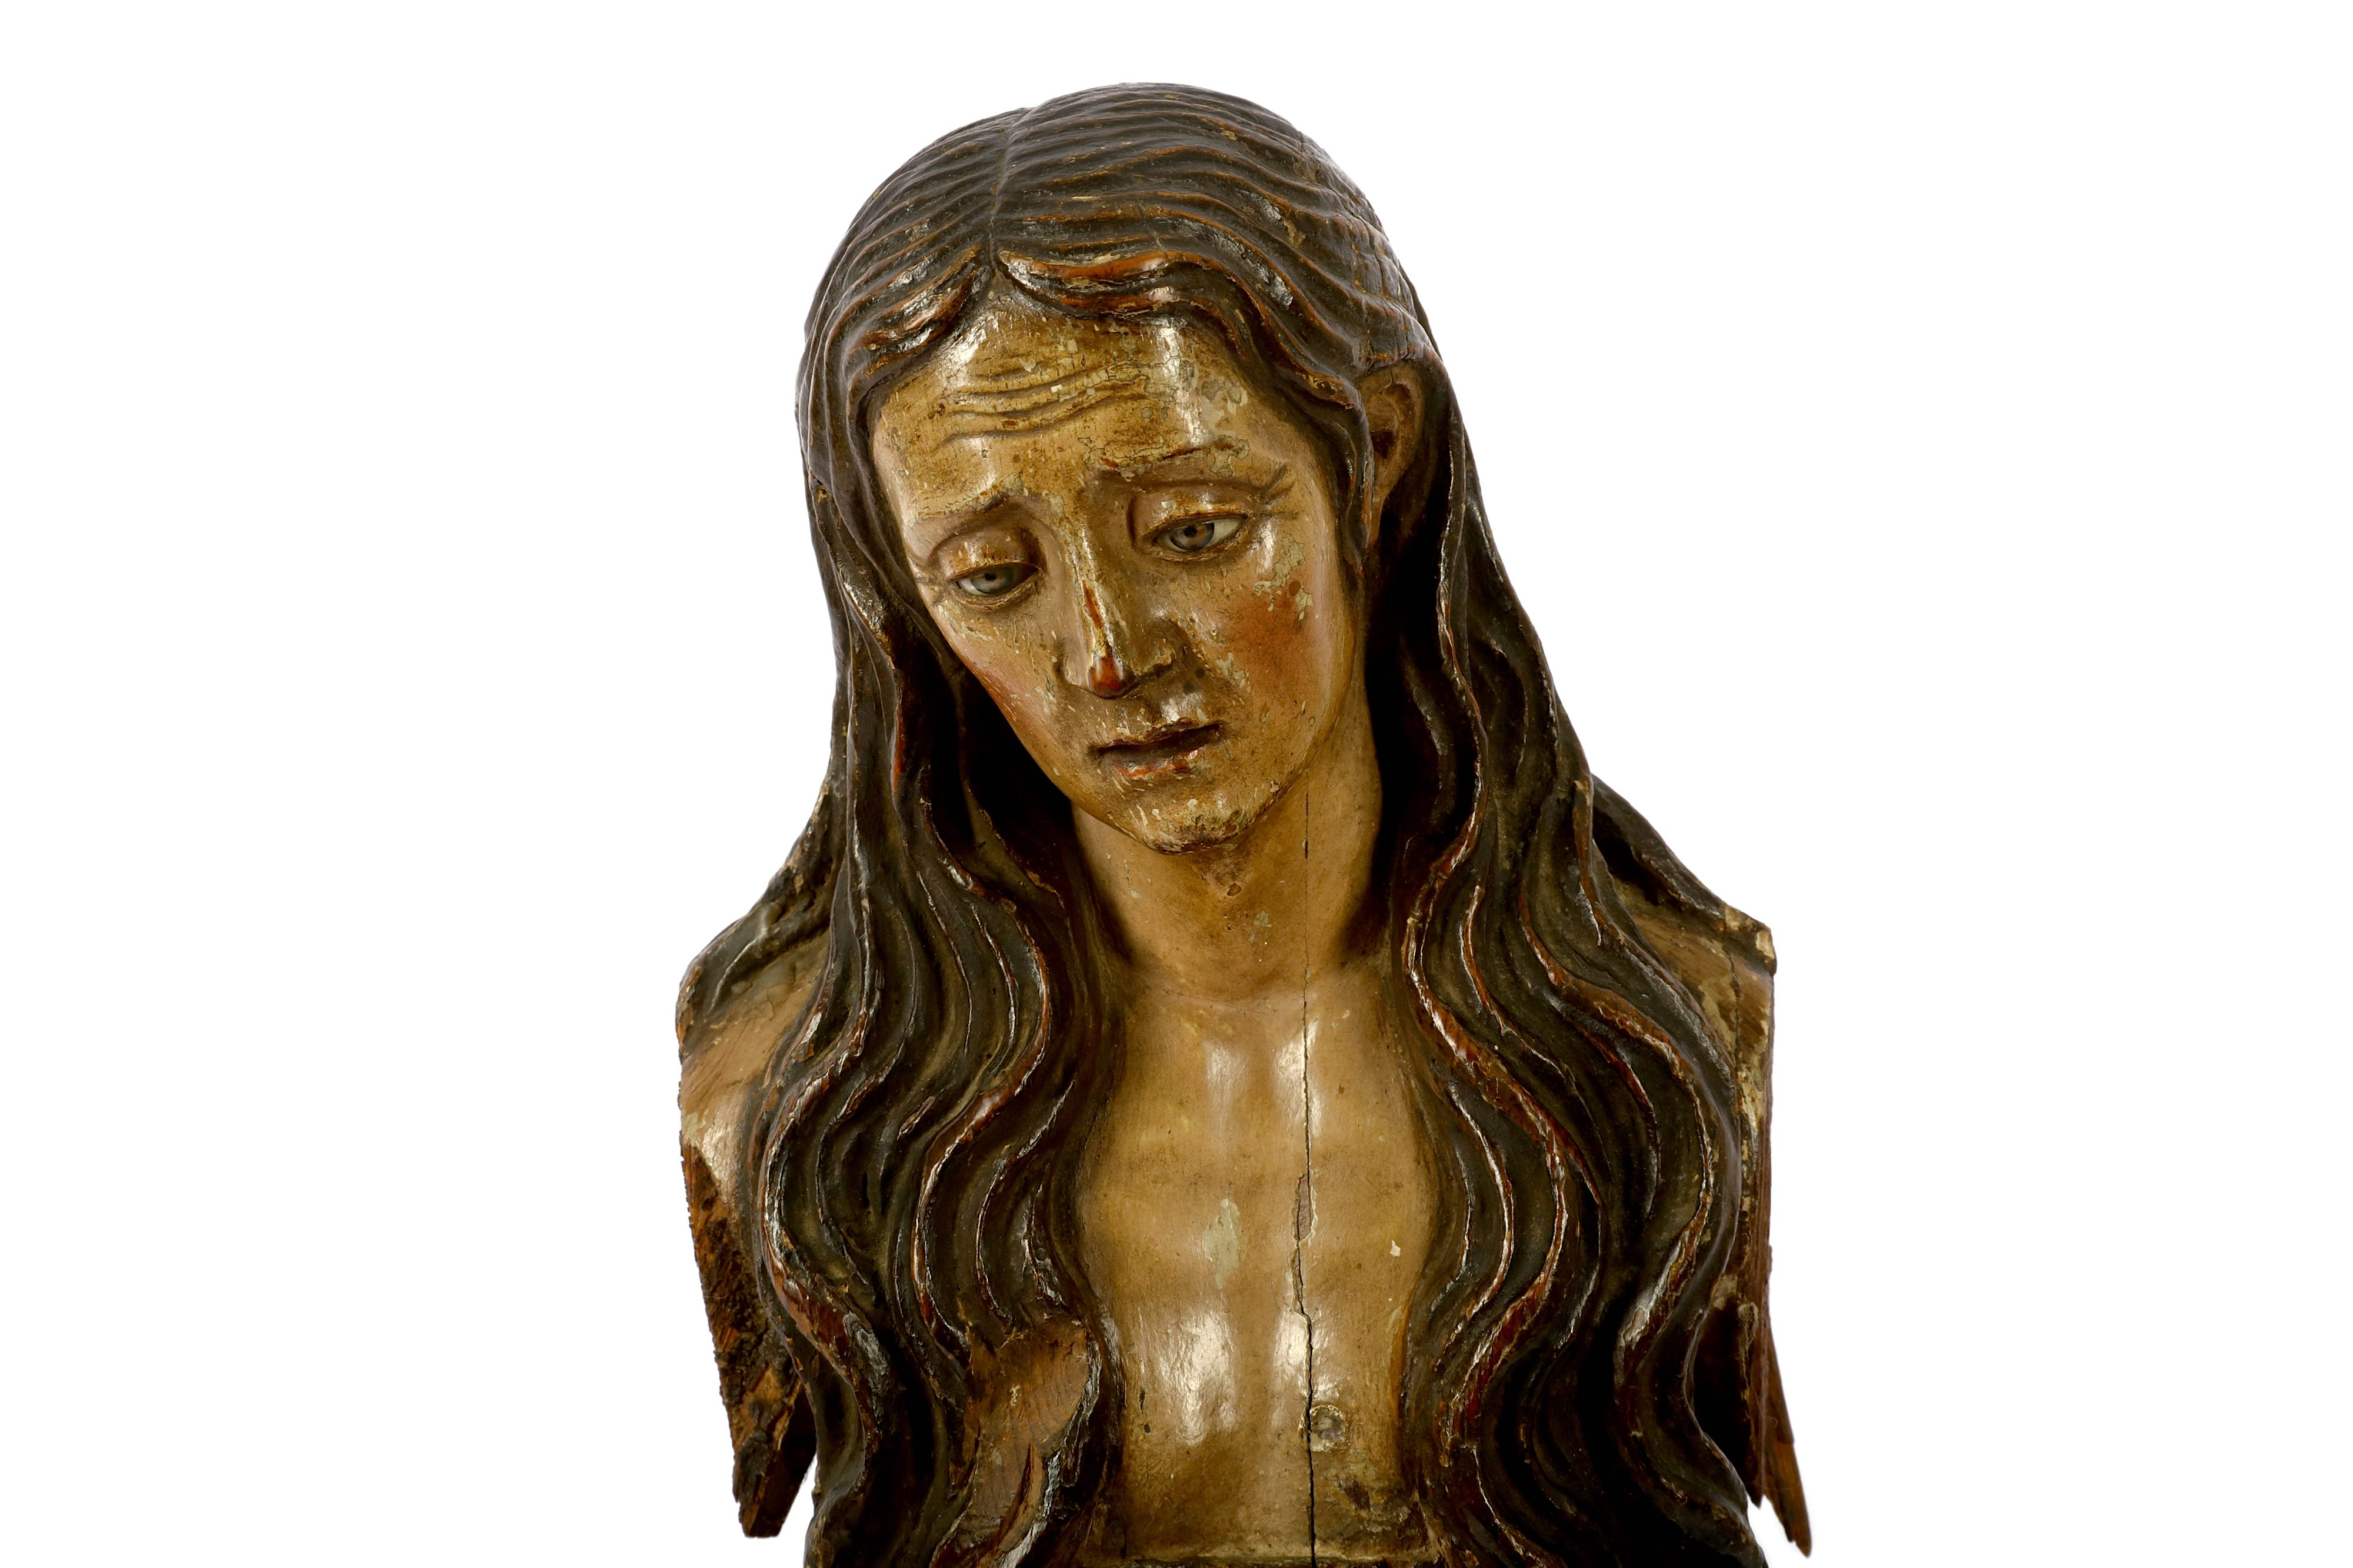 Lot 29 - A CARVED AND PAINTED FIGURE OF MARY MAGDALENE 19TH CENTURY